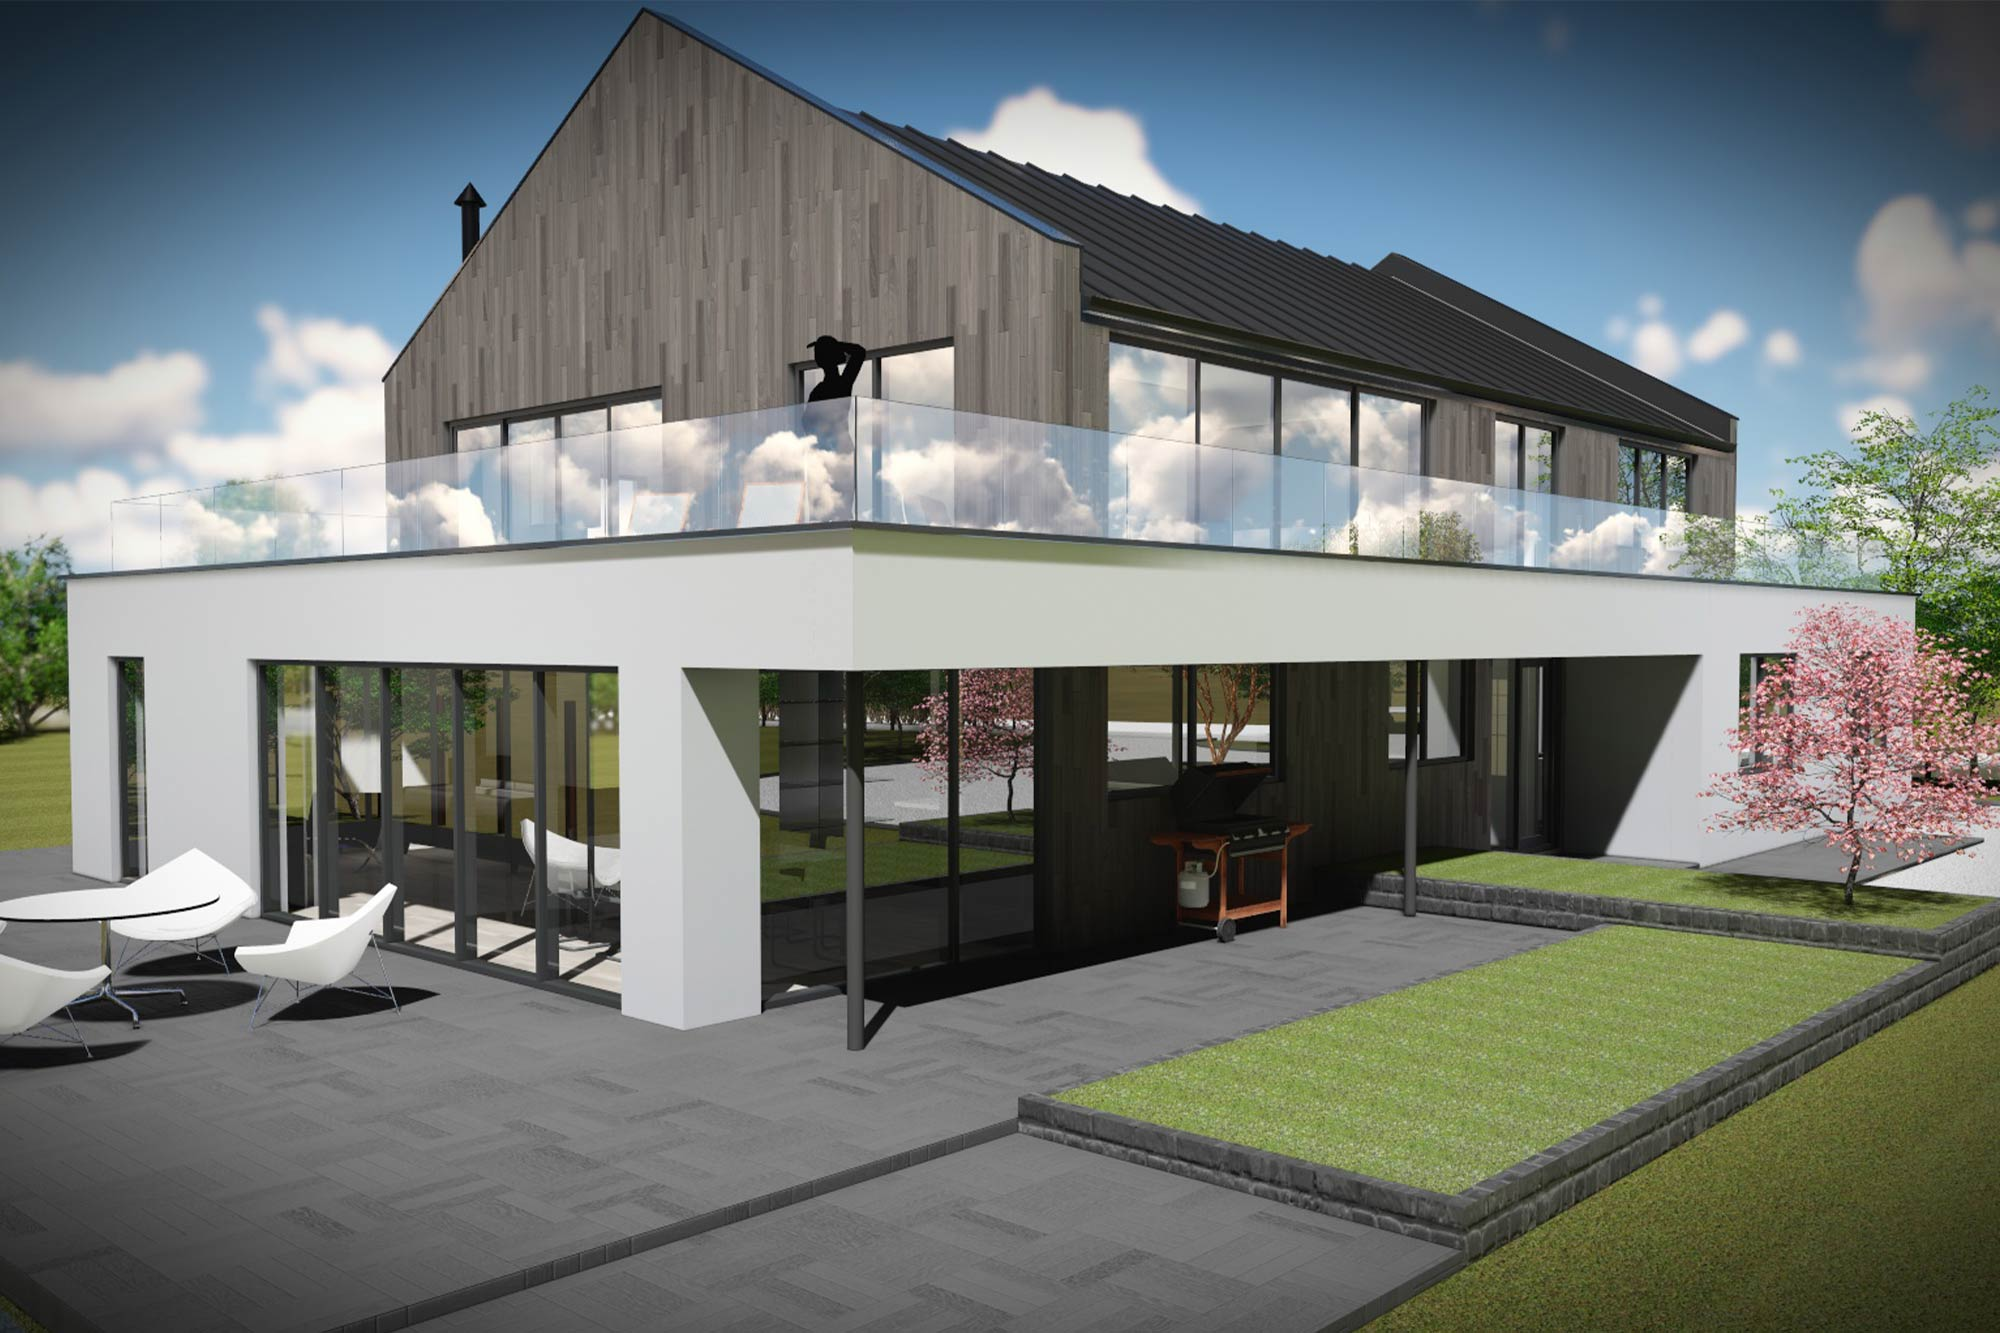 Contemporary, timber clad house re-model and extension set over the River Wyre in Poulton-le-Fylde, Lancashire